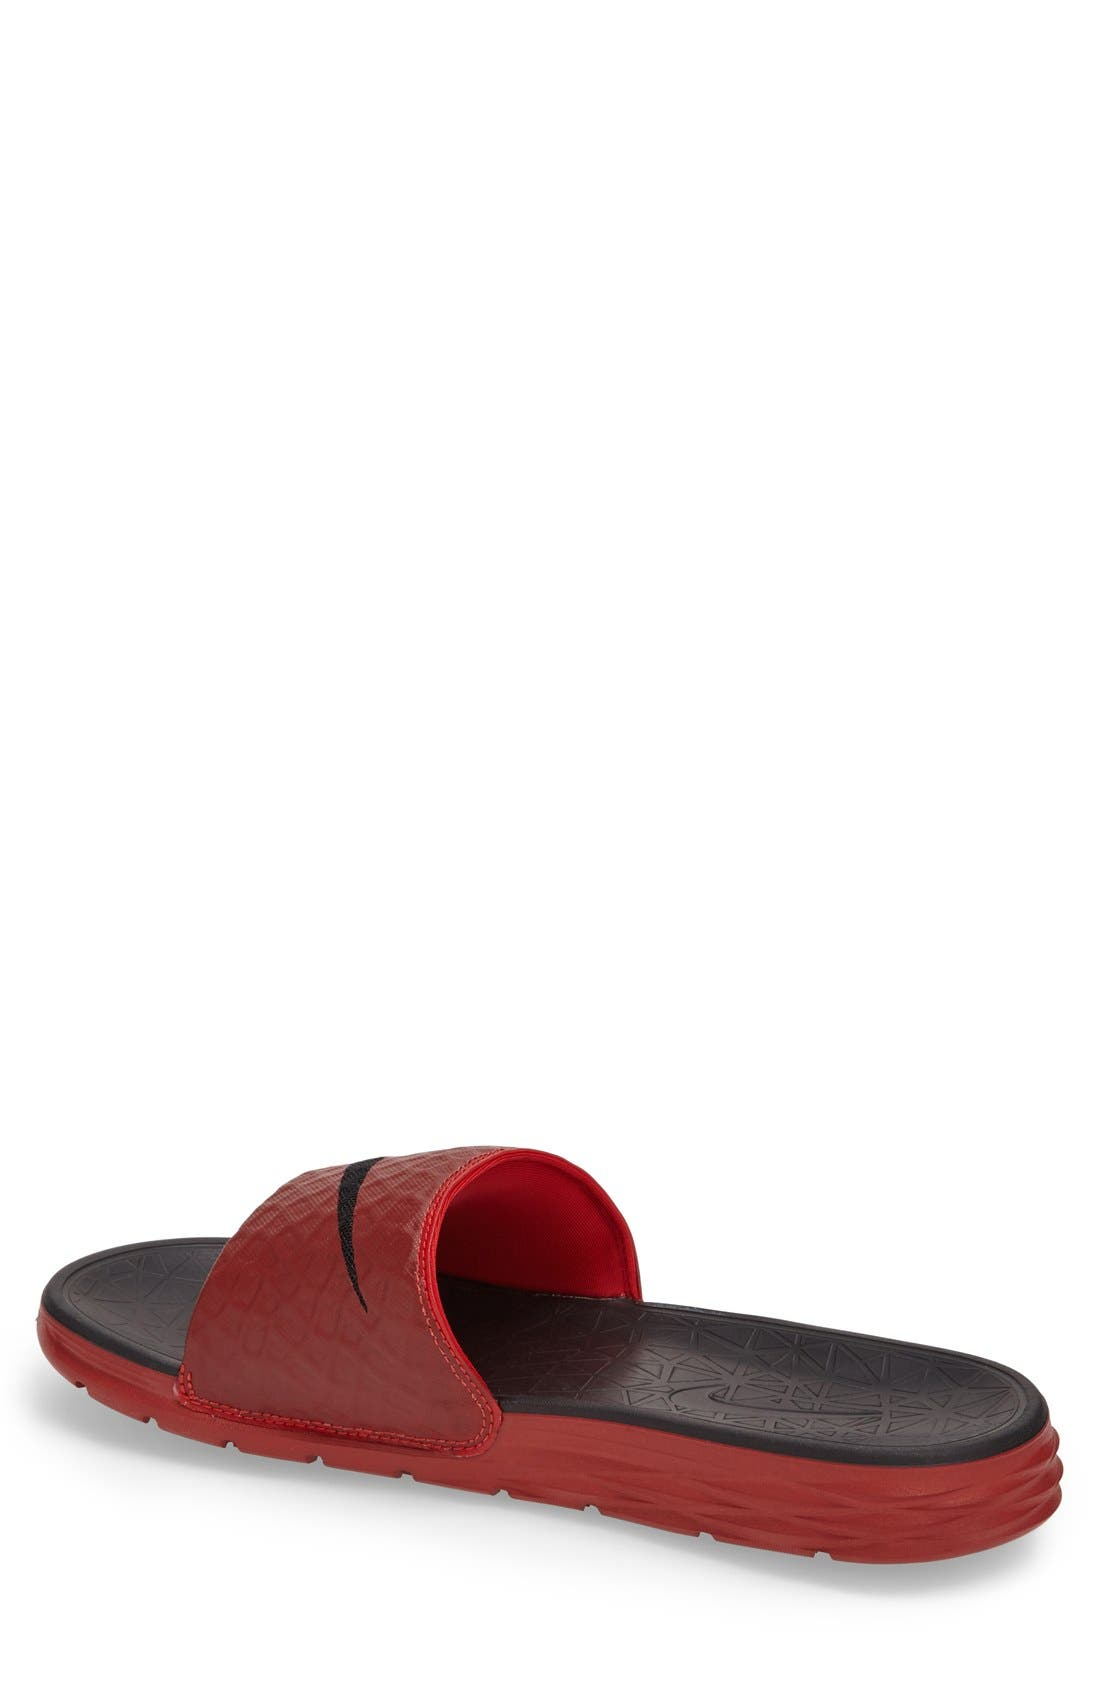 'Benassi Solarsoft 2' Slide Sandal,                             Alternate thumbnail 2, color,                             University Red/ Black